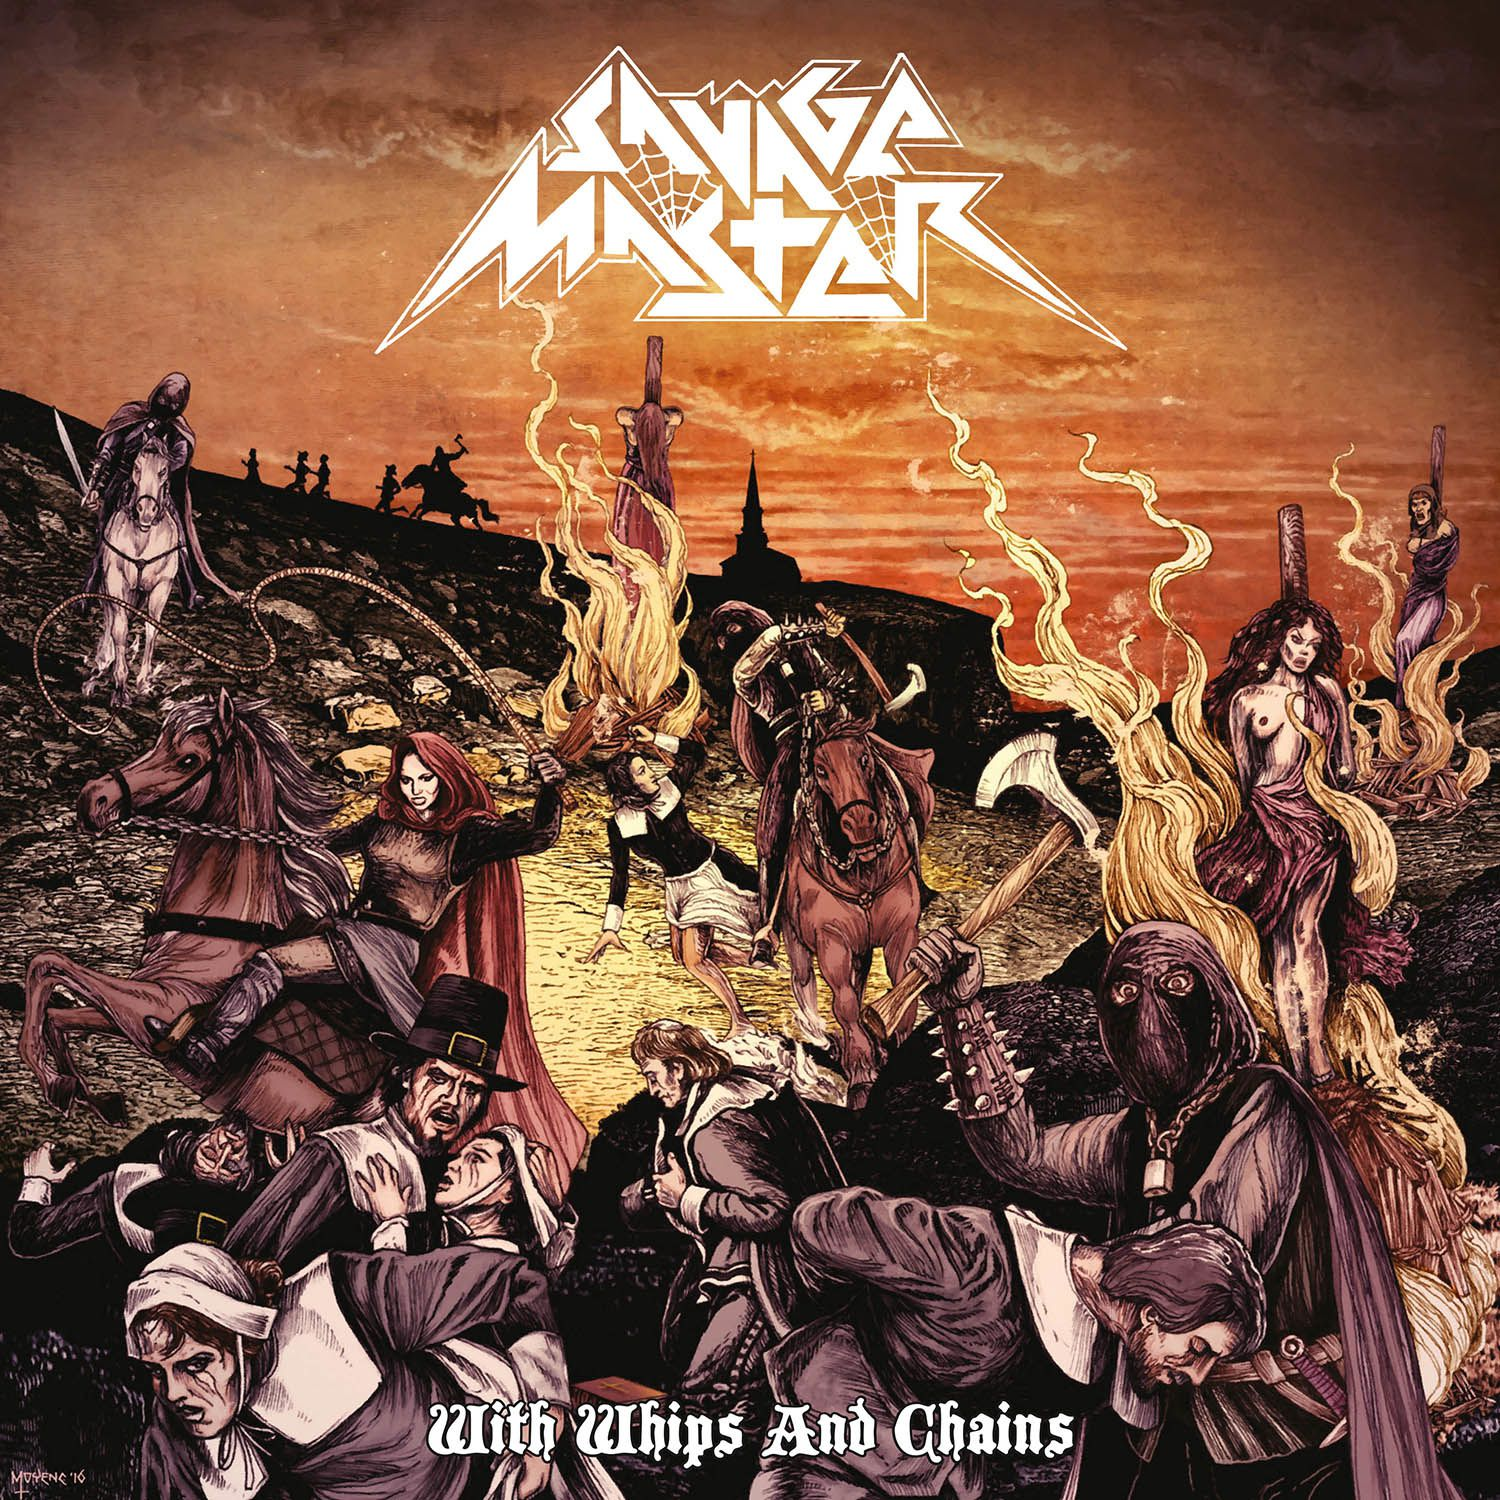 CD review SAVAGE MASTER &quot&#x3B;With Whips and Chains&quot&#x3B;